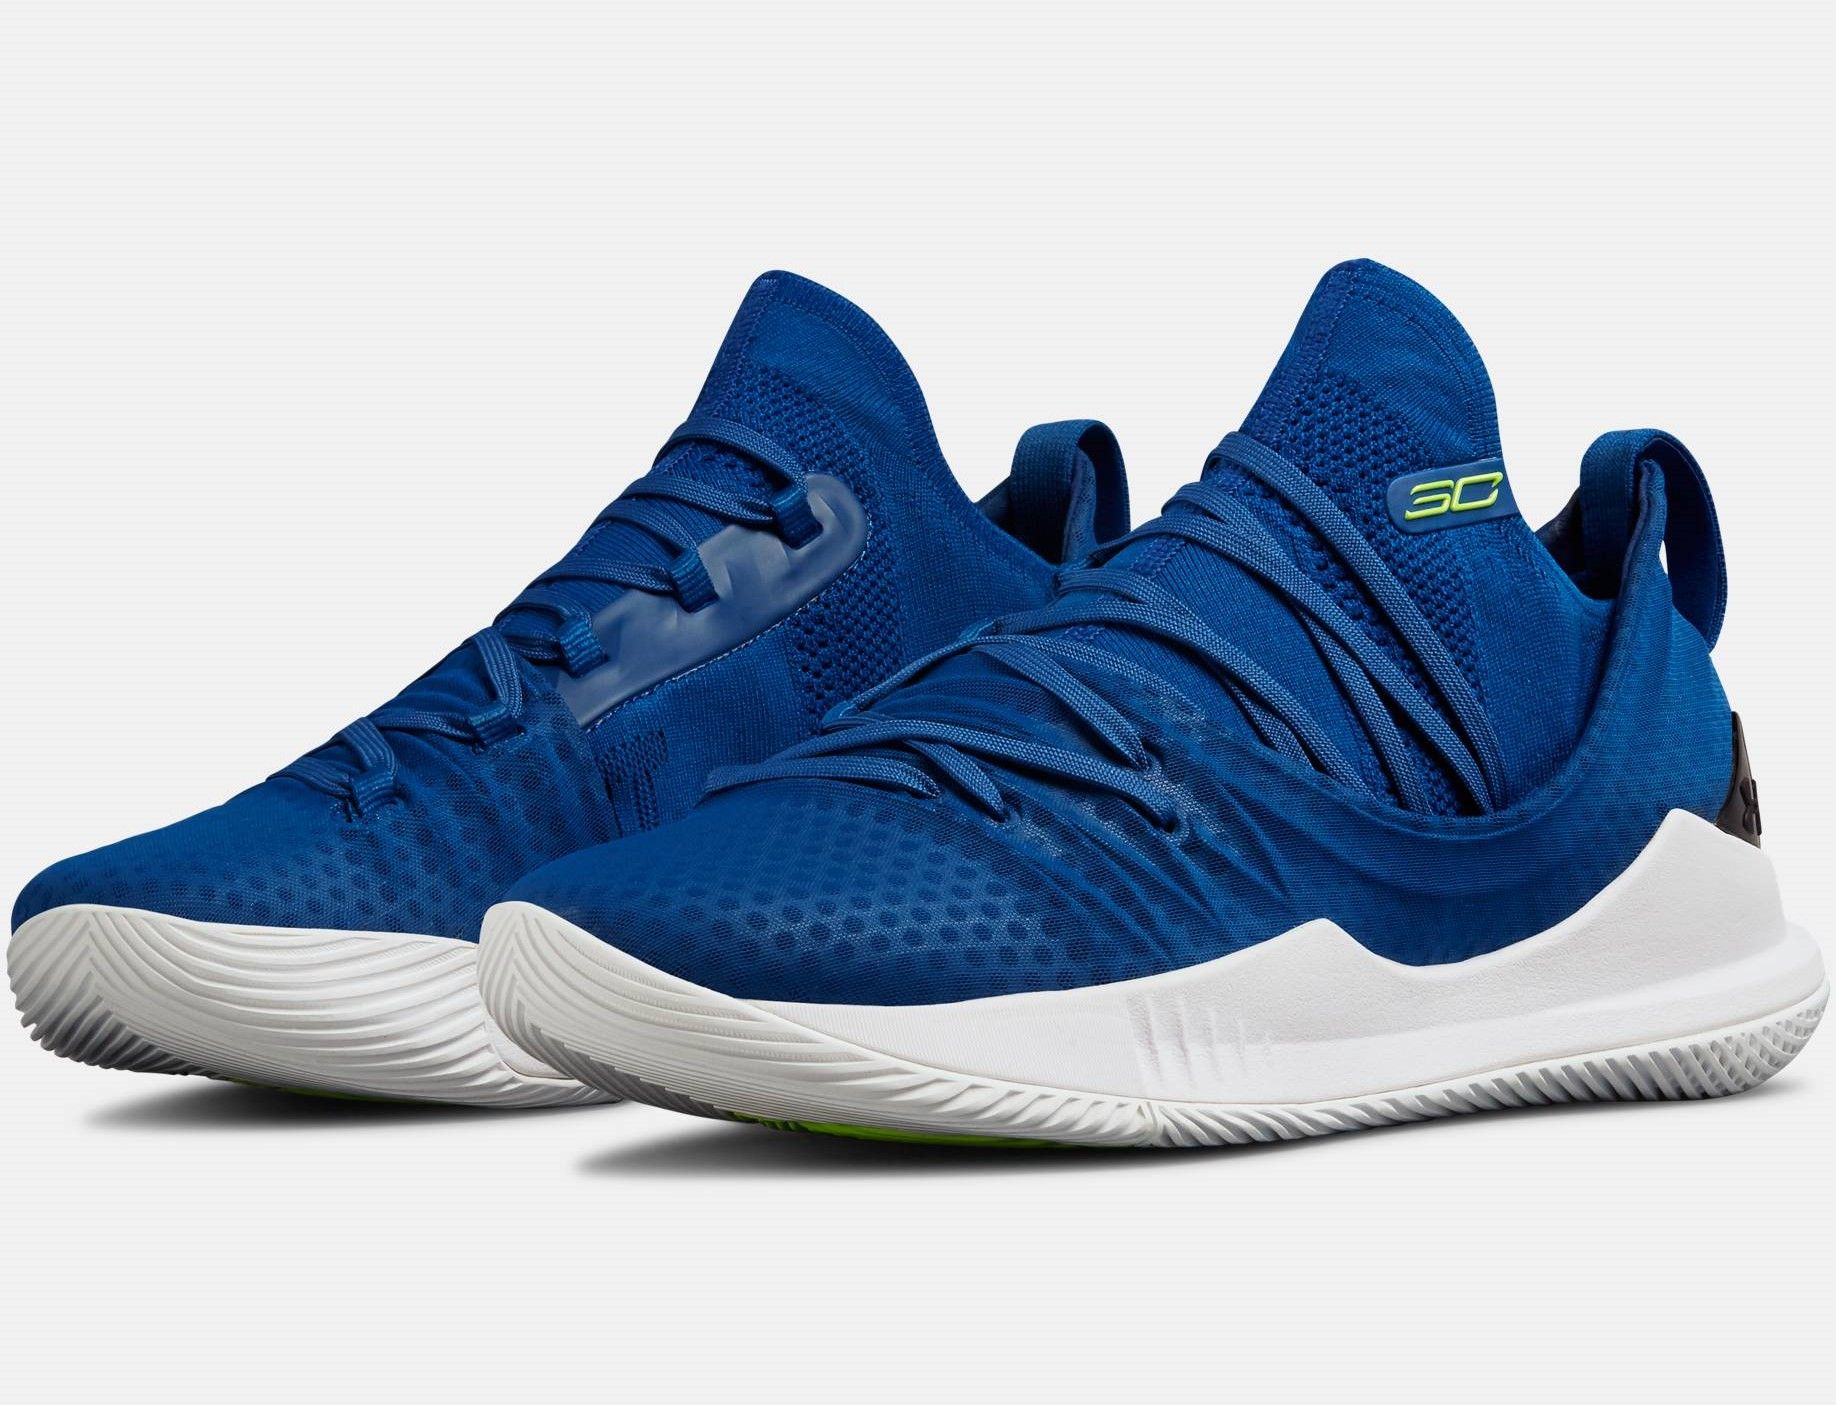 Steph's Curry 5 'Moroccan Blue' Is Up